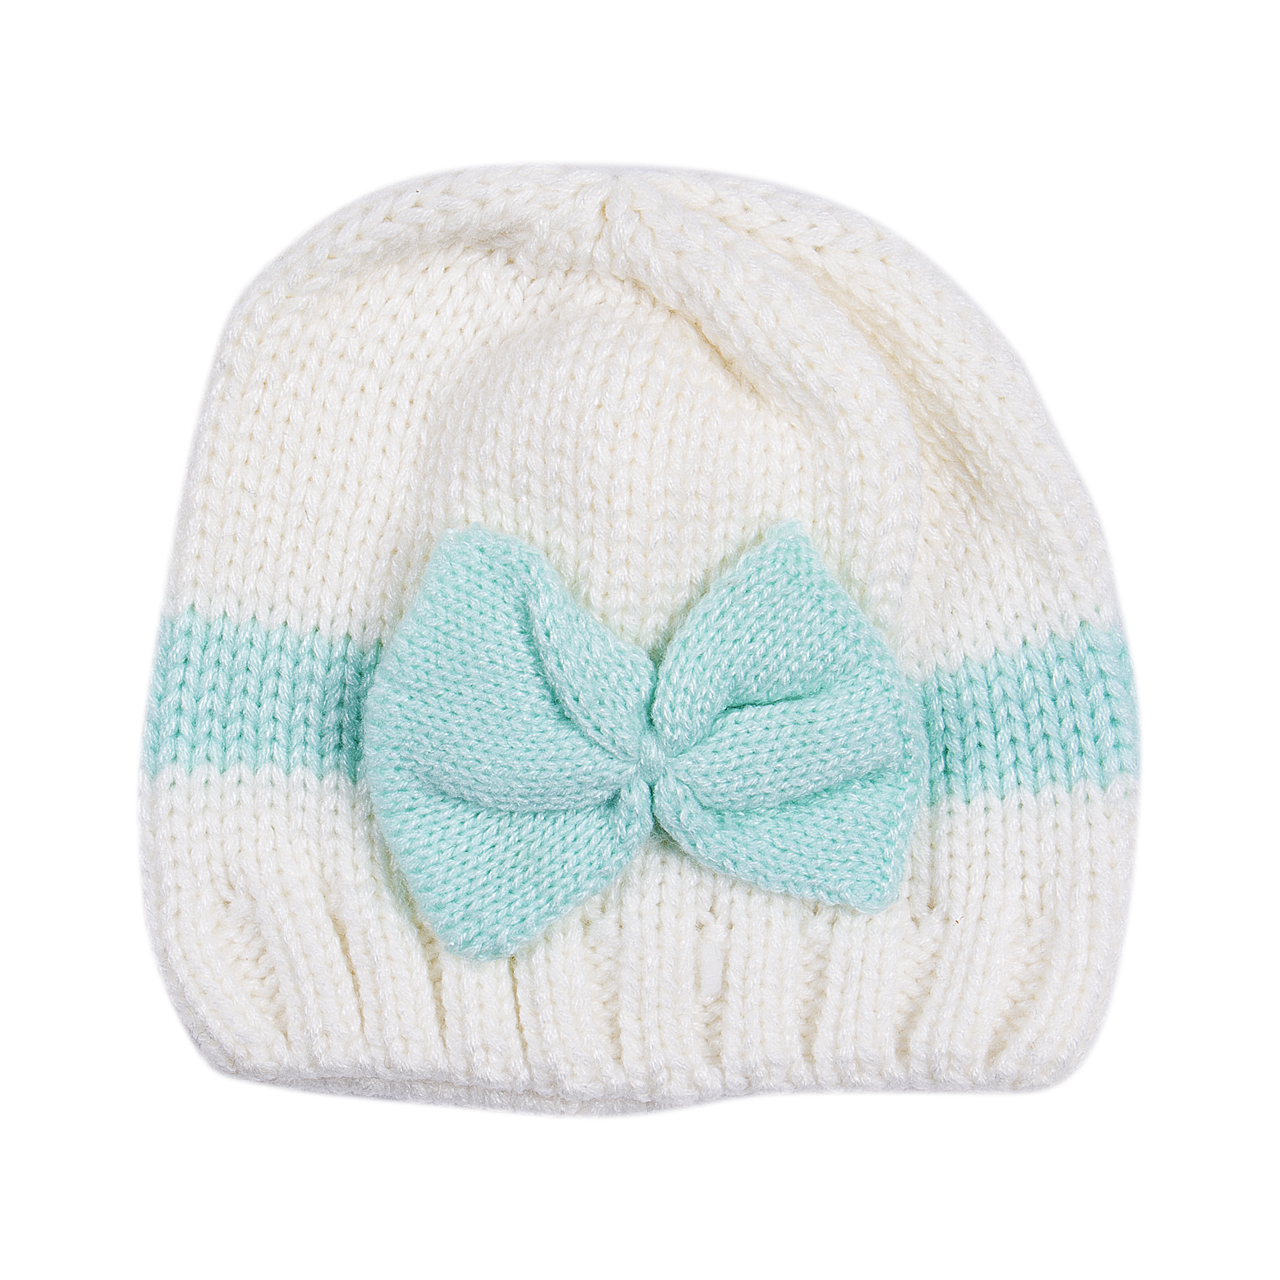 Baby Girl Boy Hat 2017 New Adorable Baby Toddler Girls Boys Warm Winter Knit Beanie Fur Hat Crochet Ski Ball Cap